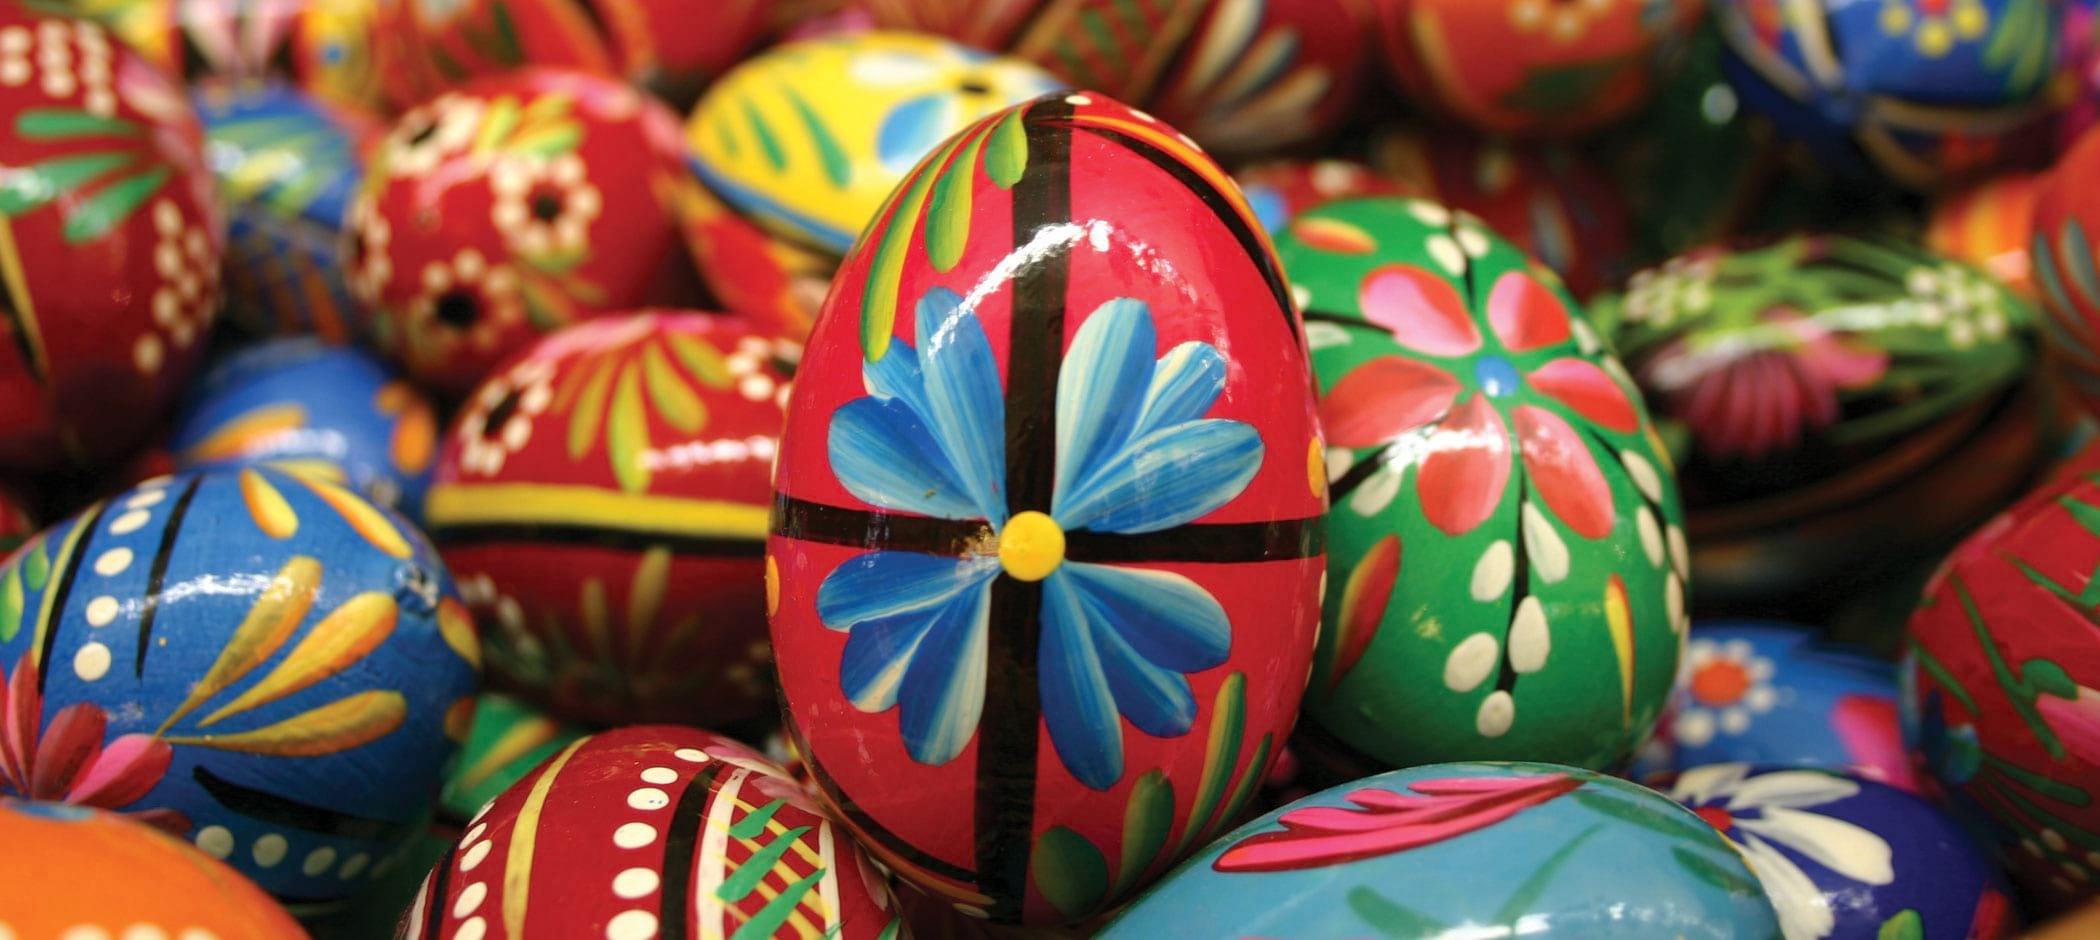 Polish Art Center decorated eggs